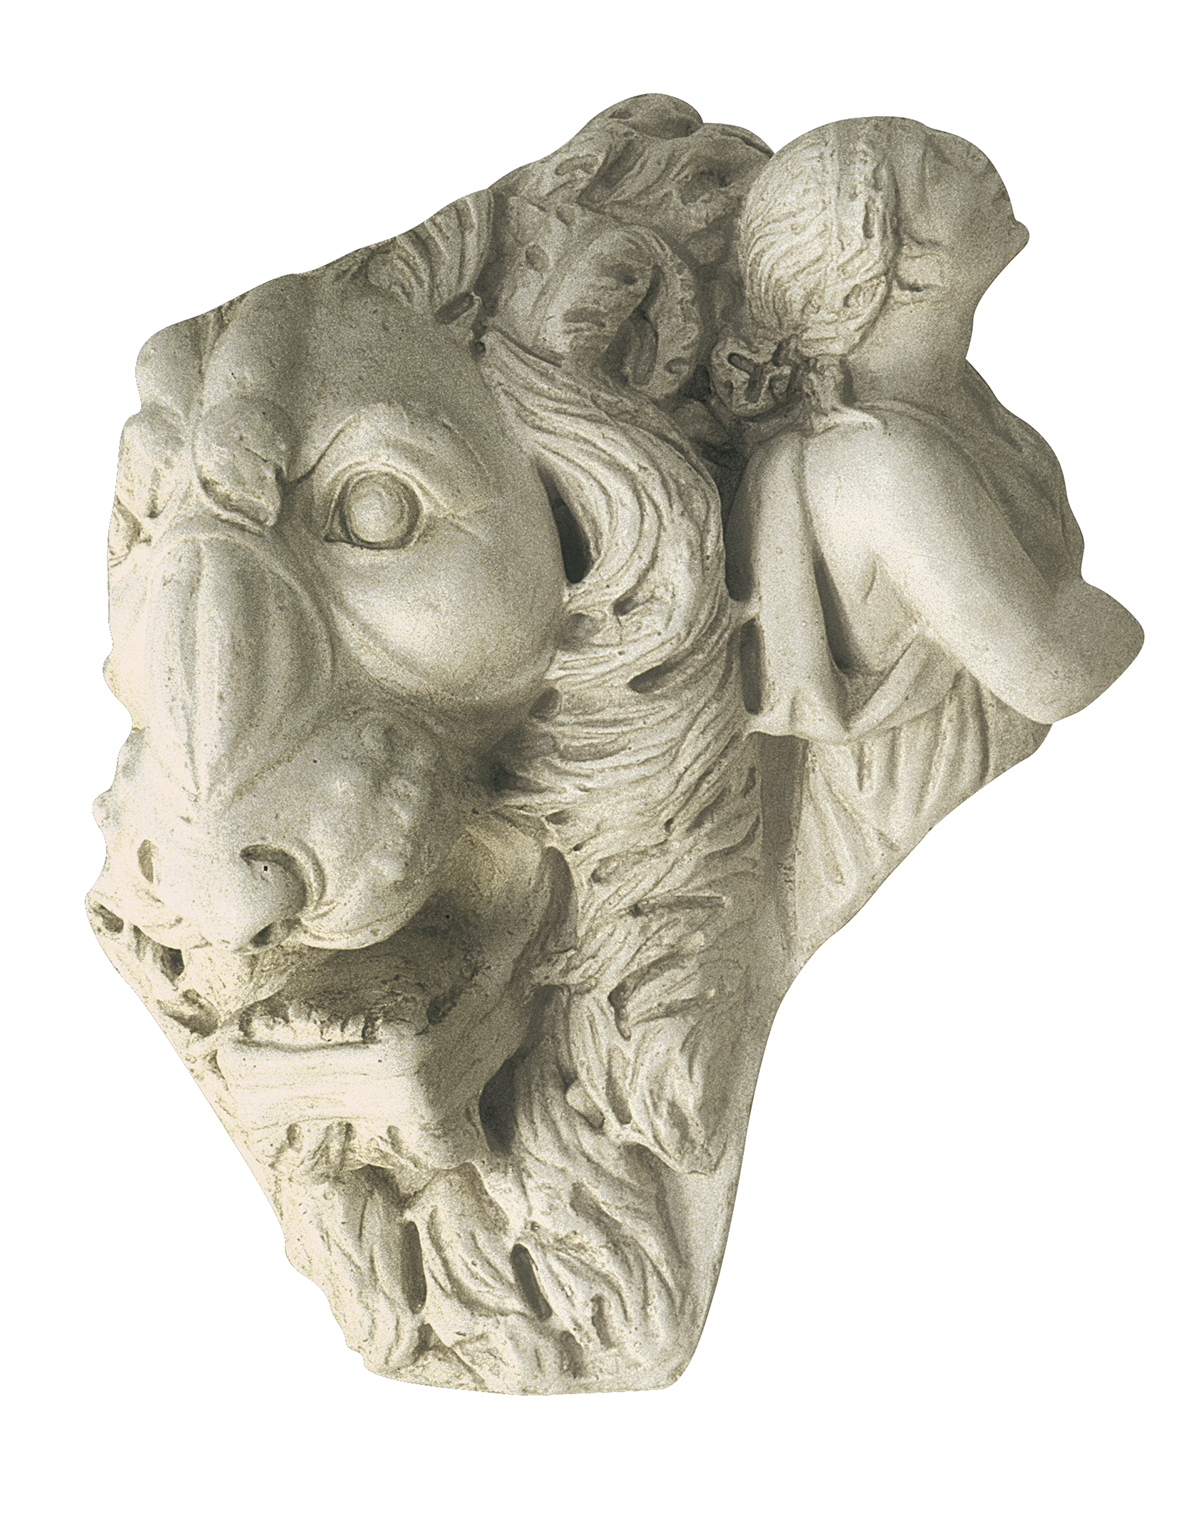 Decorative cornerpiece from a sarcophagus (cast in plaster)